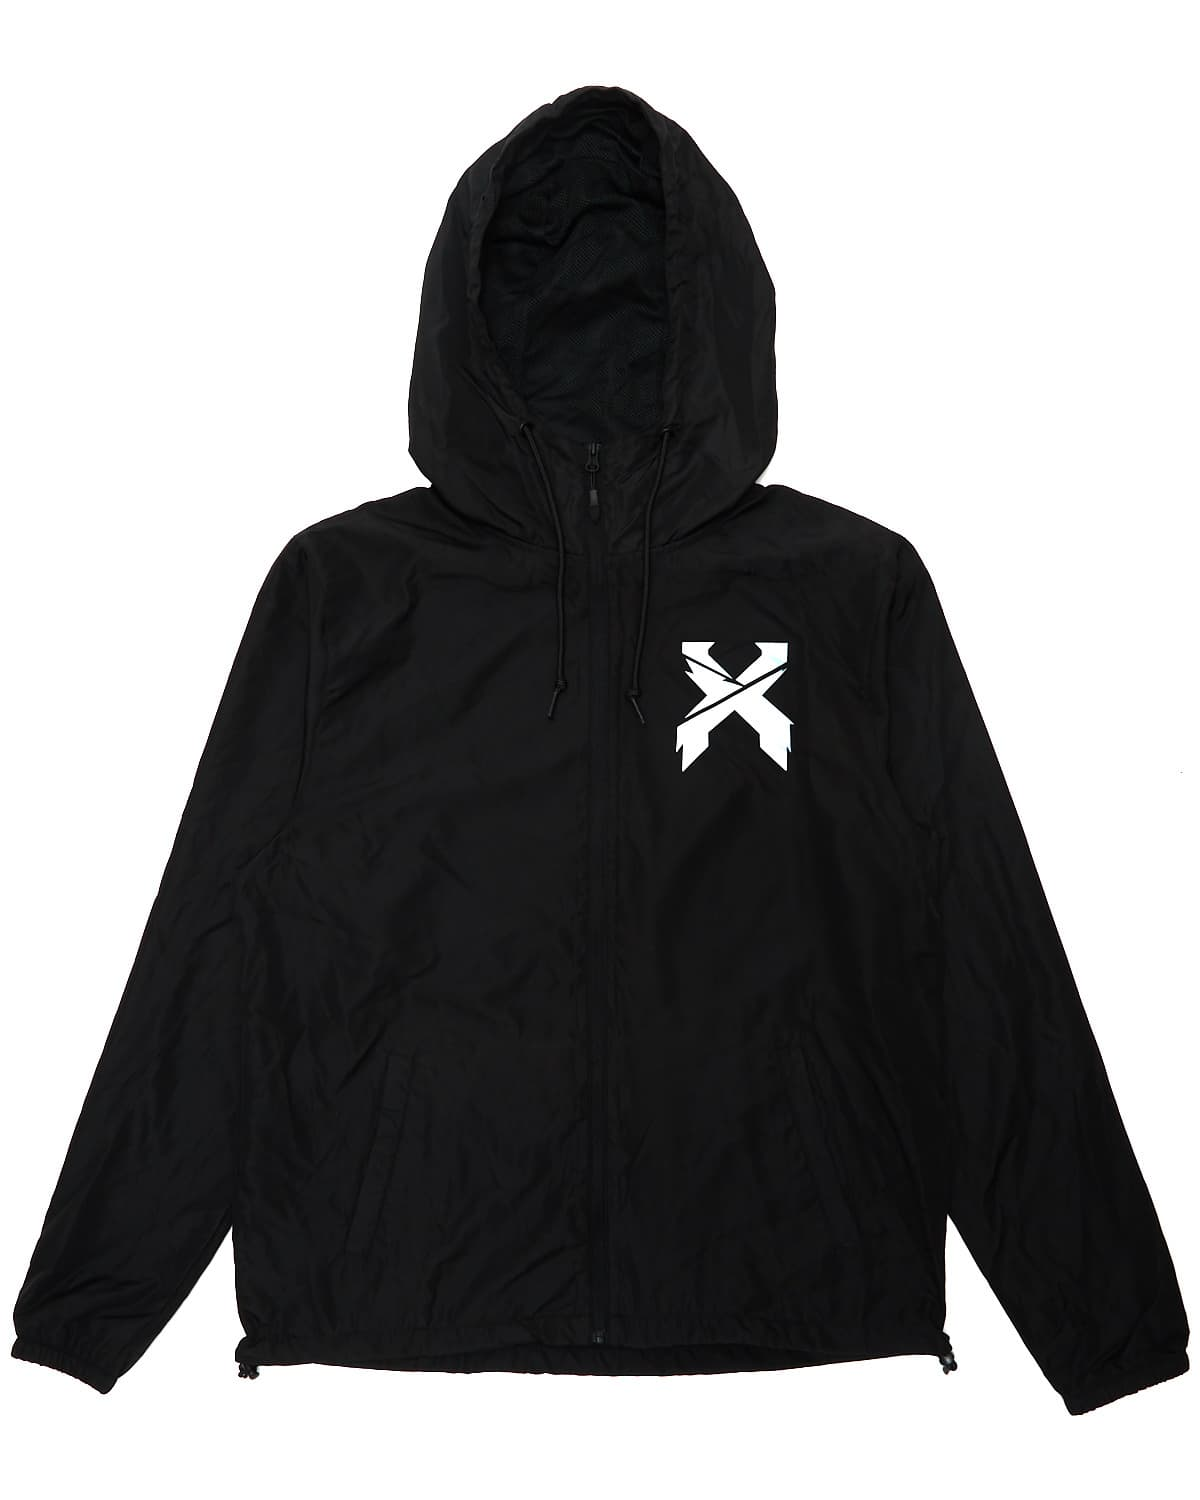 Excision 'Sliced' Logo Hooded Windbreaker - Black